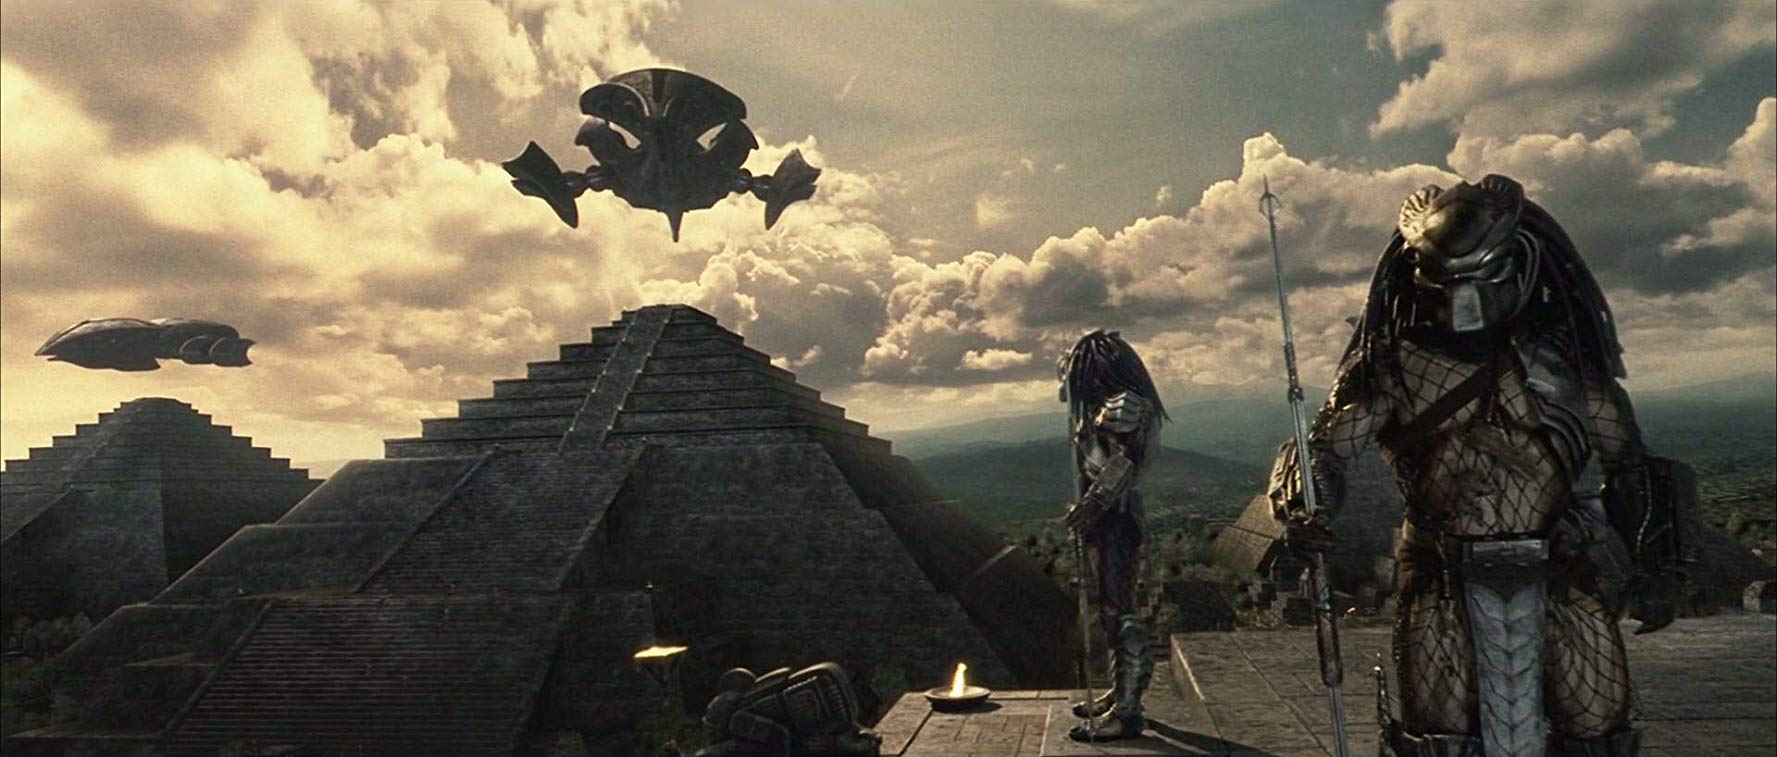 Predators and pyramids in AVP Alien vs Predator (2004)